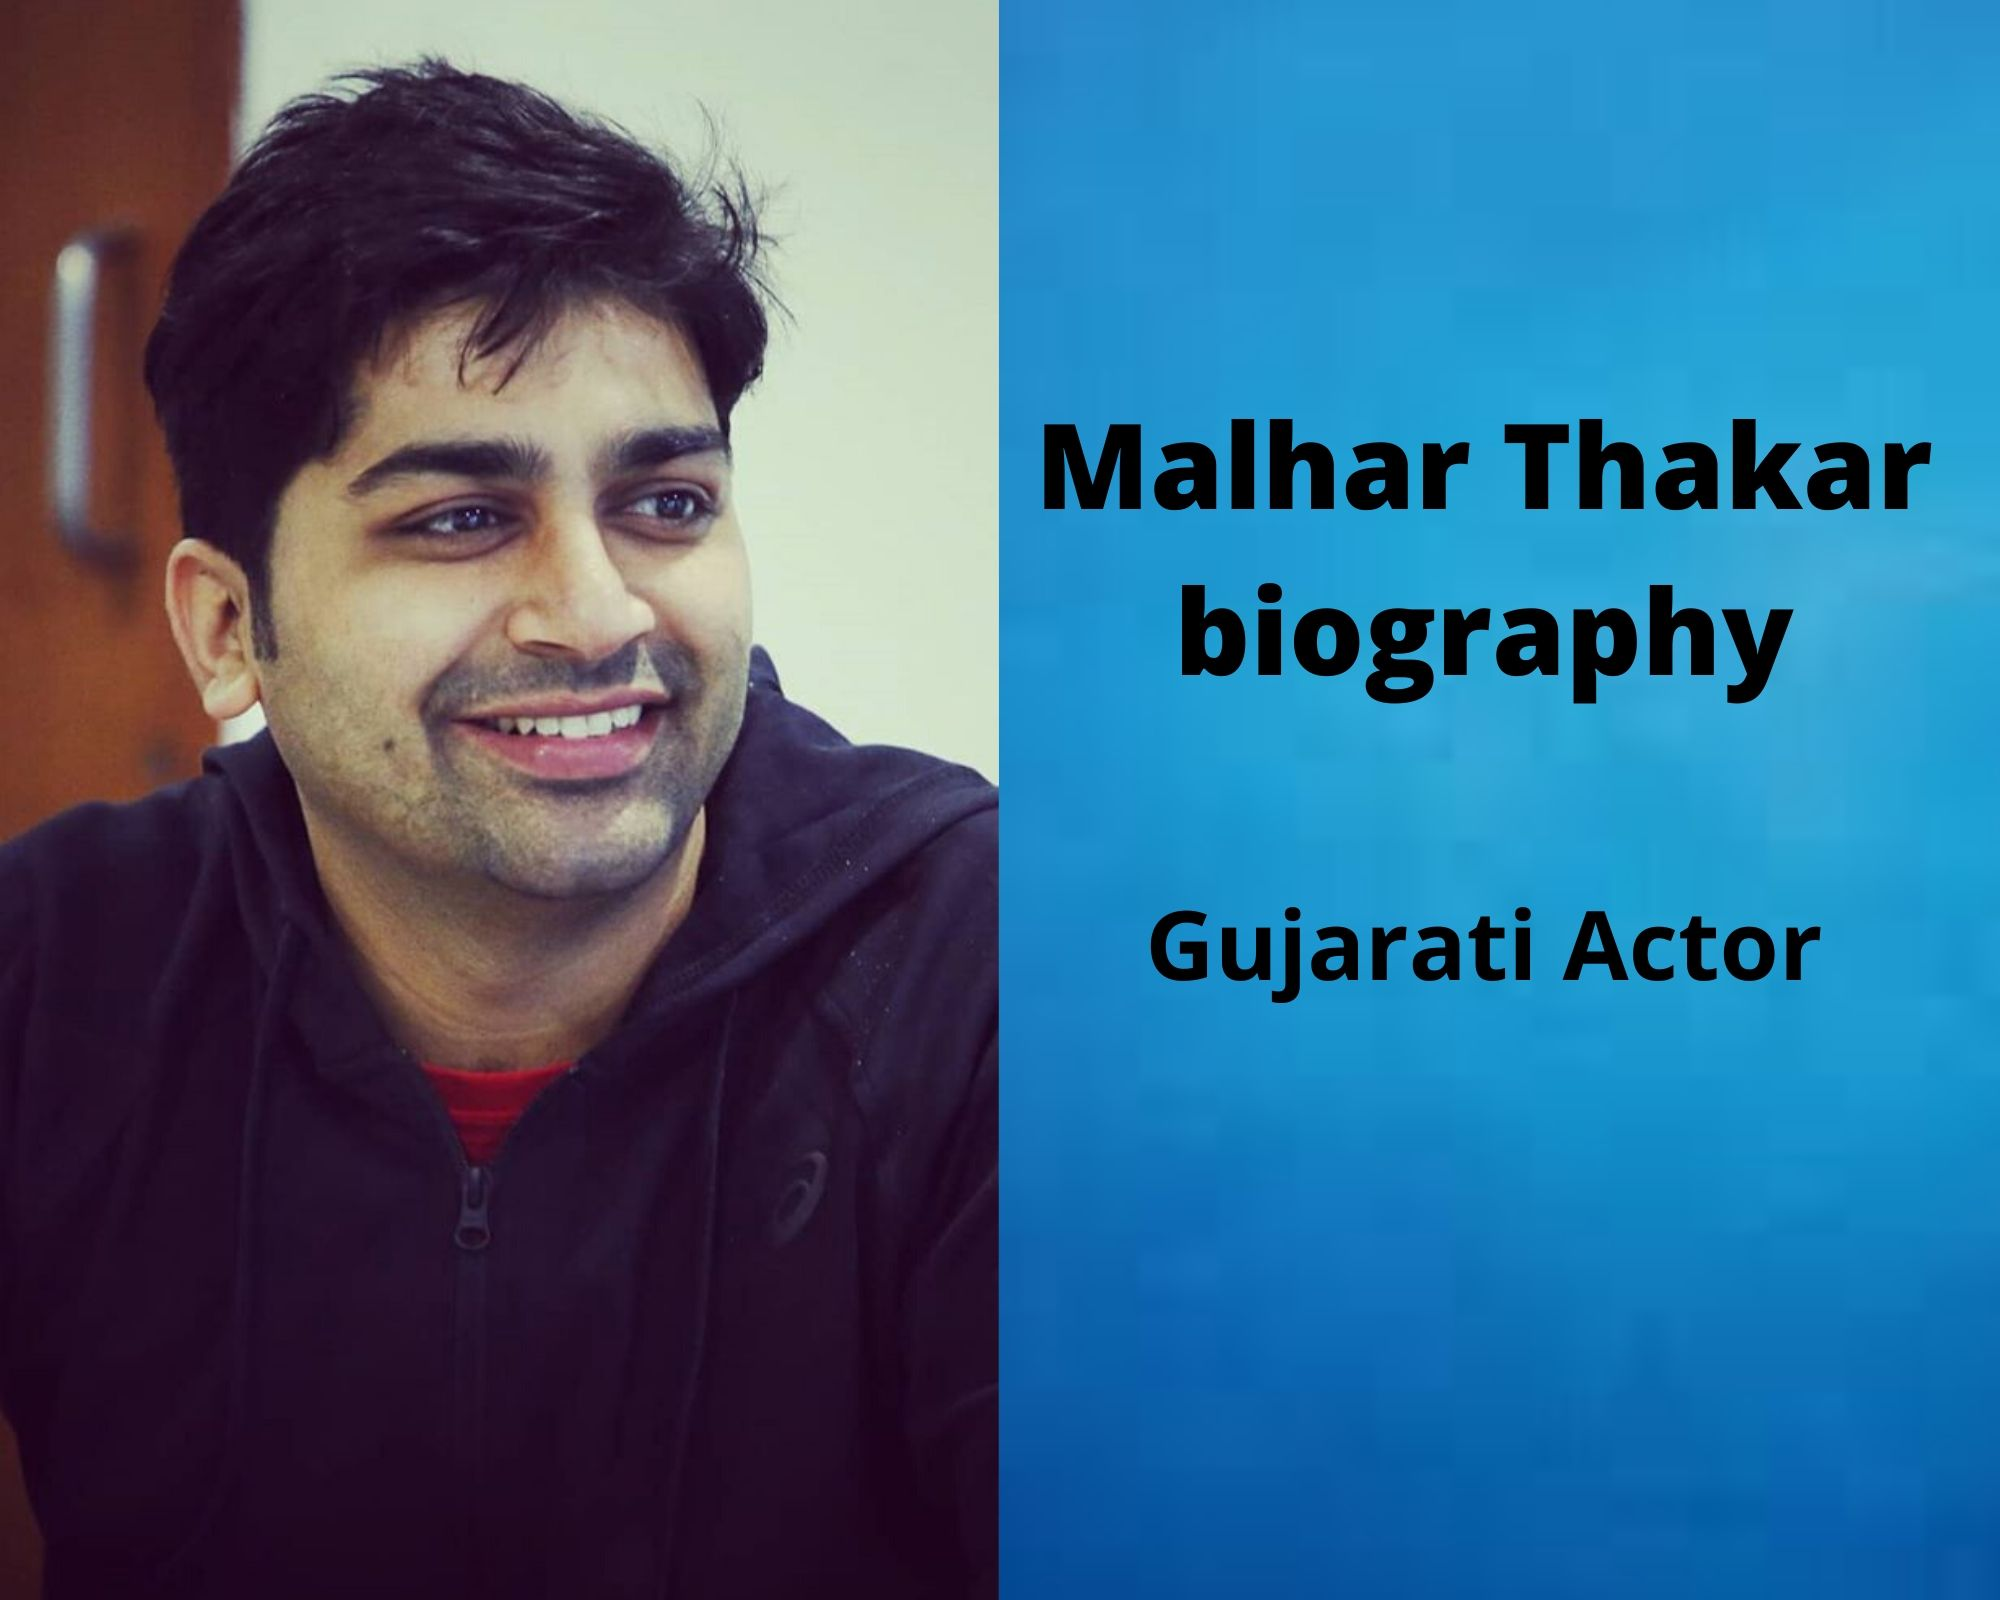 Malhar Thakar biography